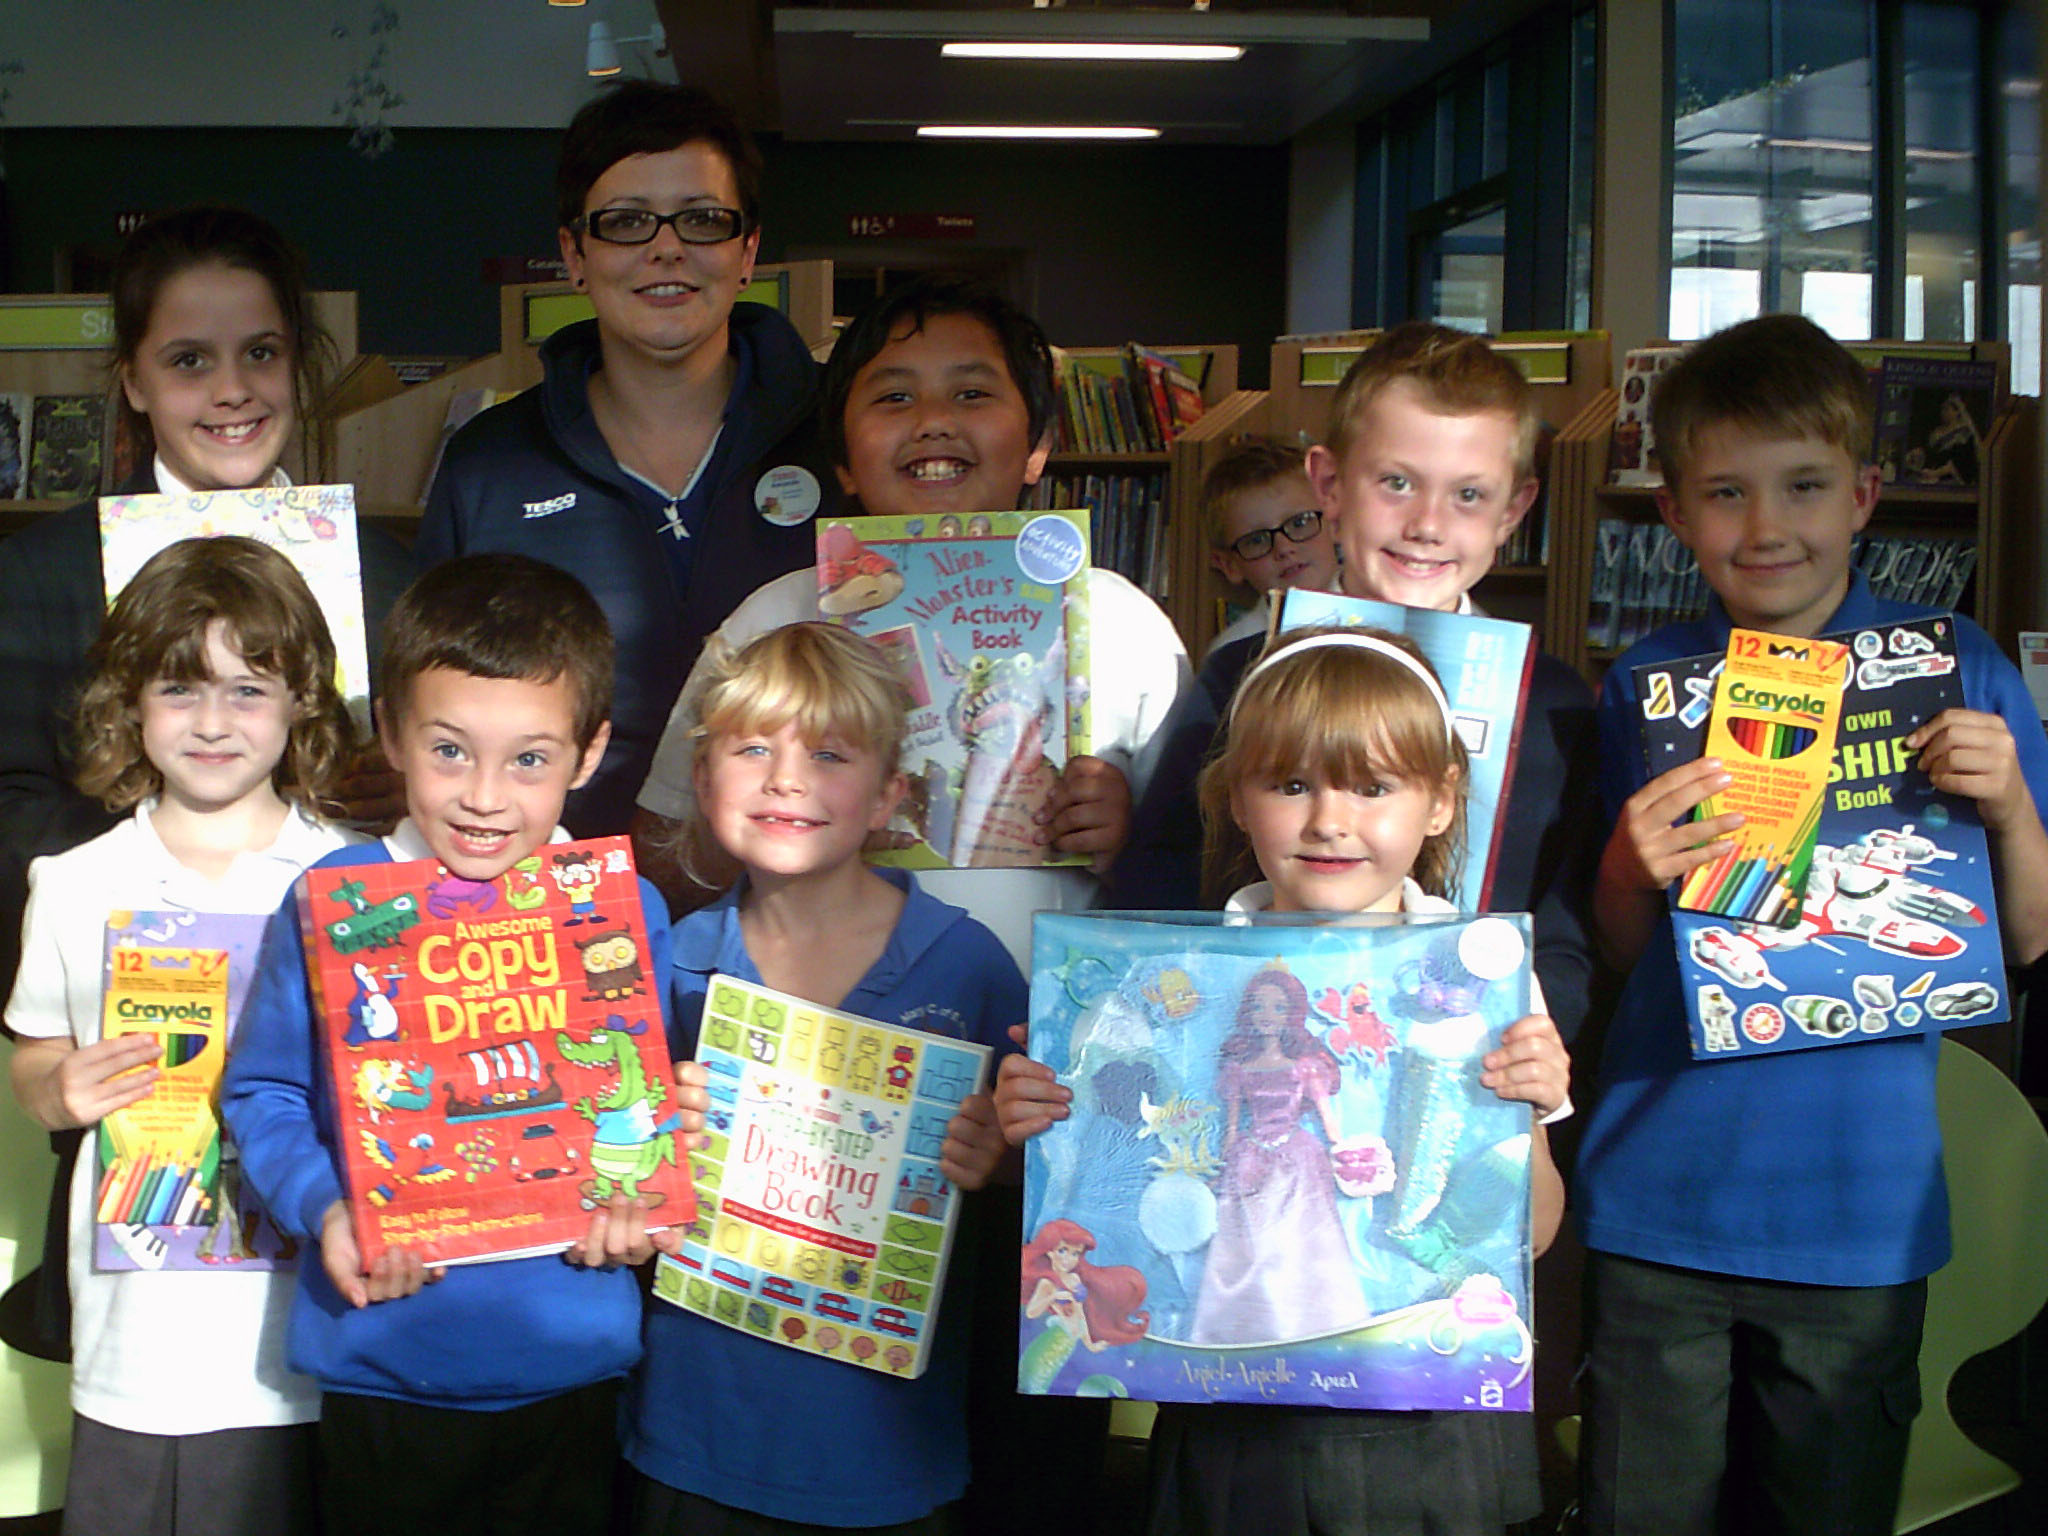 Some of the winners of the colouring competition: The back row from the left - Alexandra Archer (1st prize older category), Community Champion for Tesco Paignton Metro Amanda Nelhams, James Carlo Mund